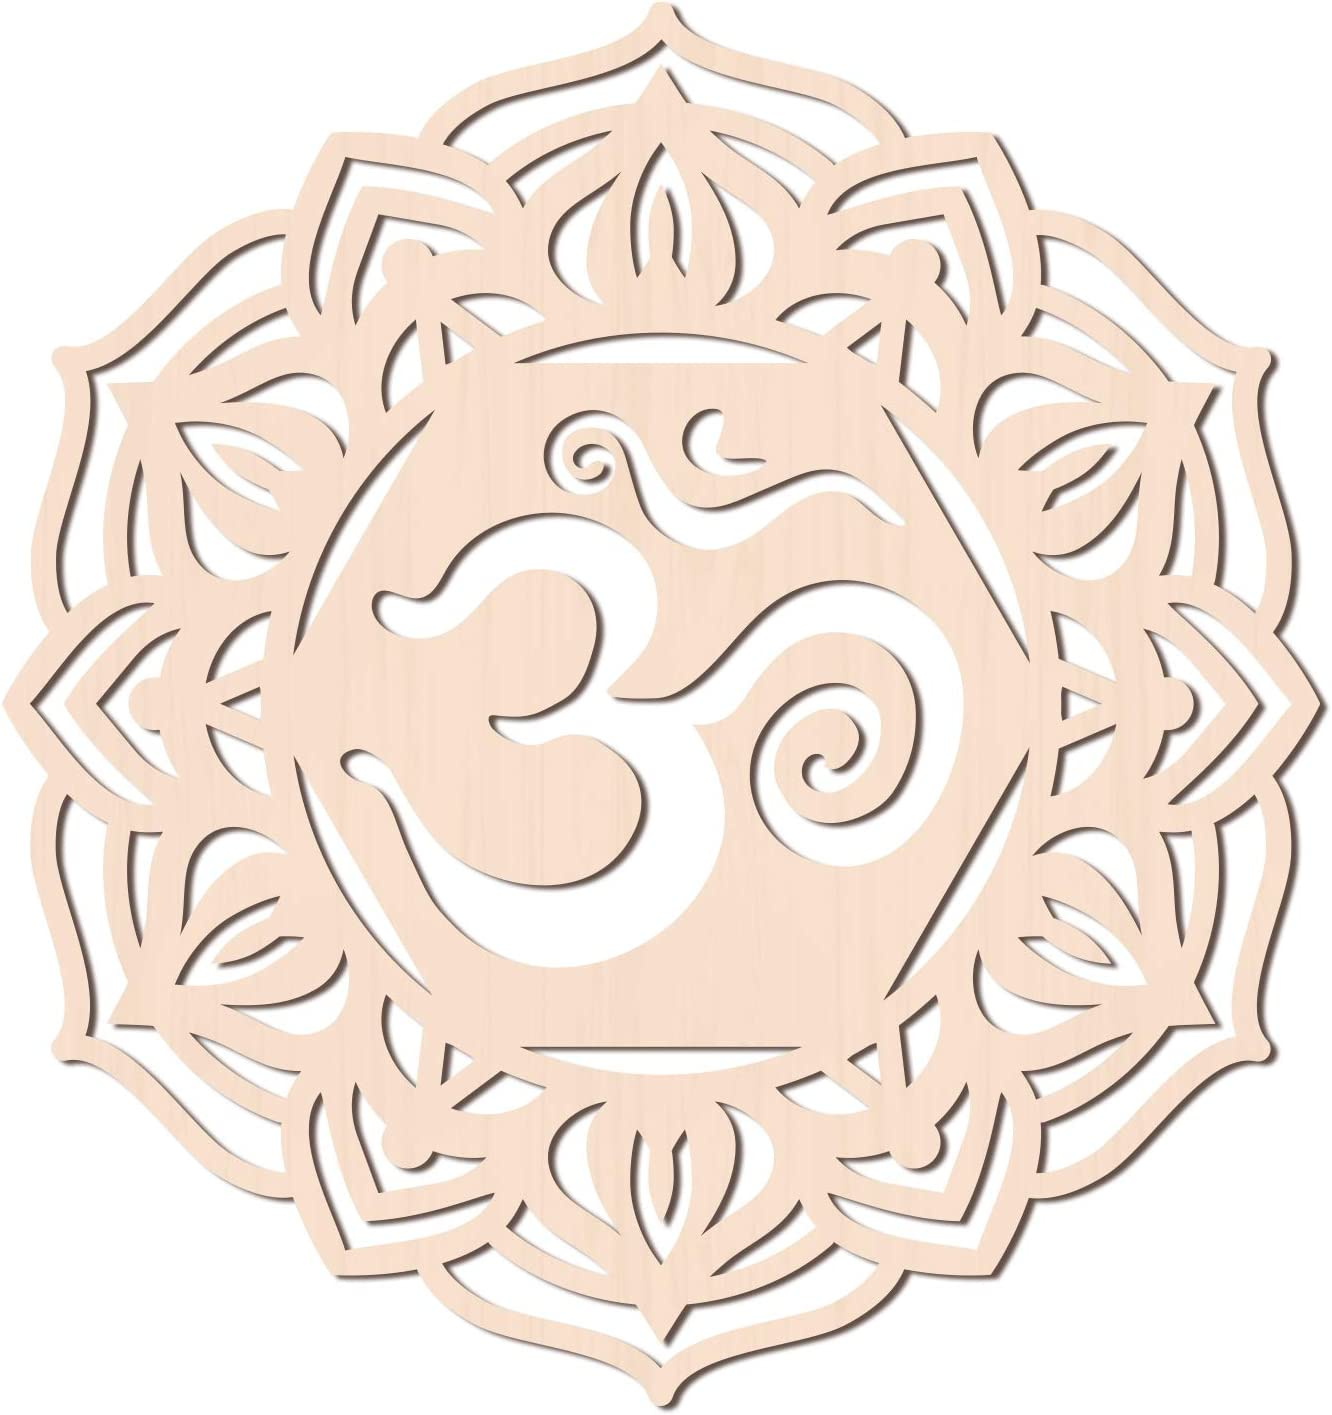 GLOBLELAND 12Inch OM Lotus Wooden Wall Art Crystal Grid Sacred Geometry Home Decor, Laser Cut Wooden Wall Sculpture for Wall Hanging Decor Art Home Decoration